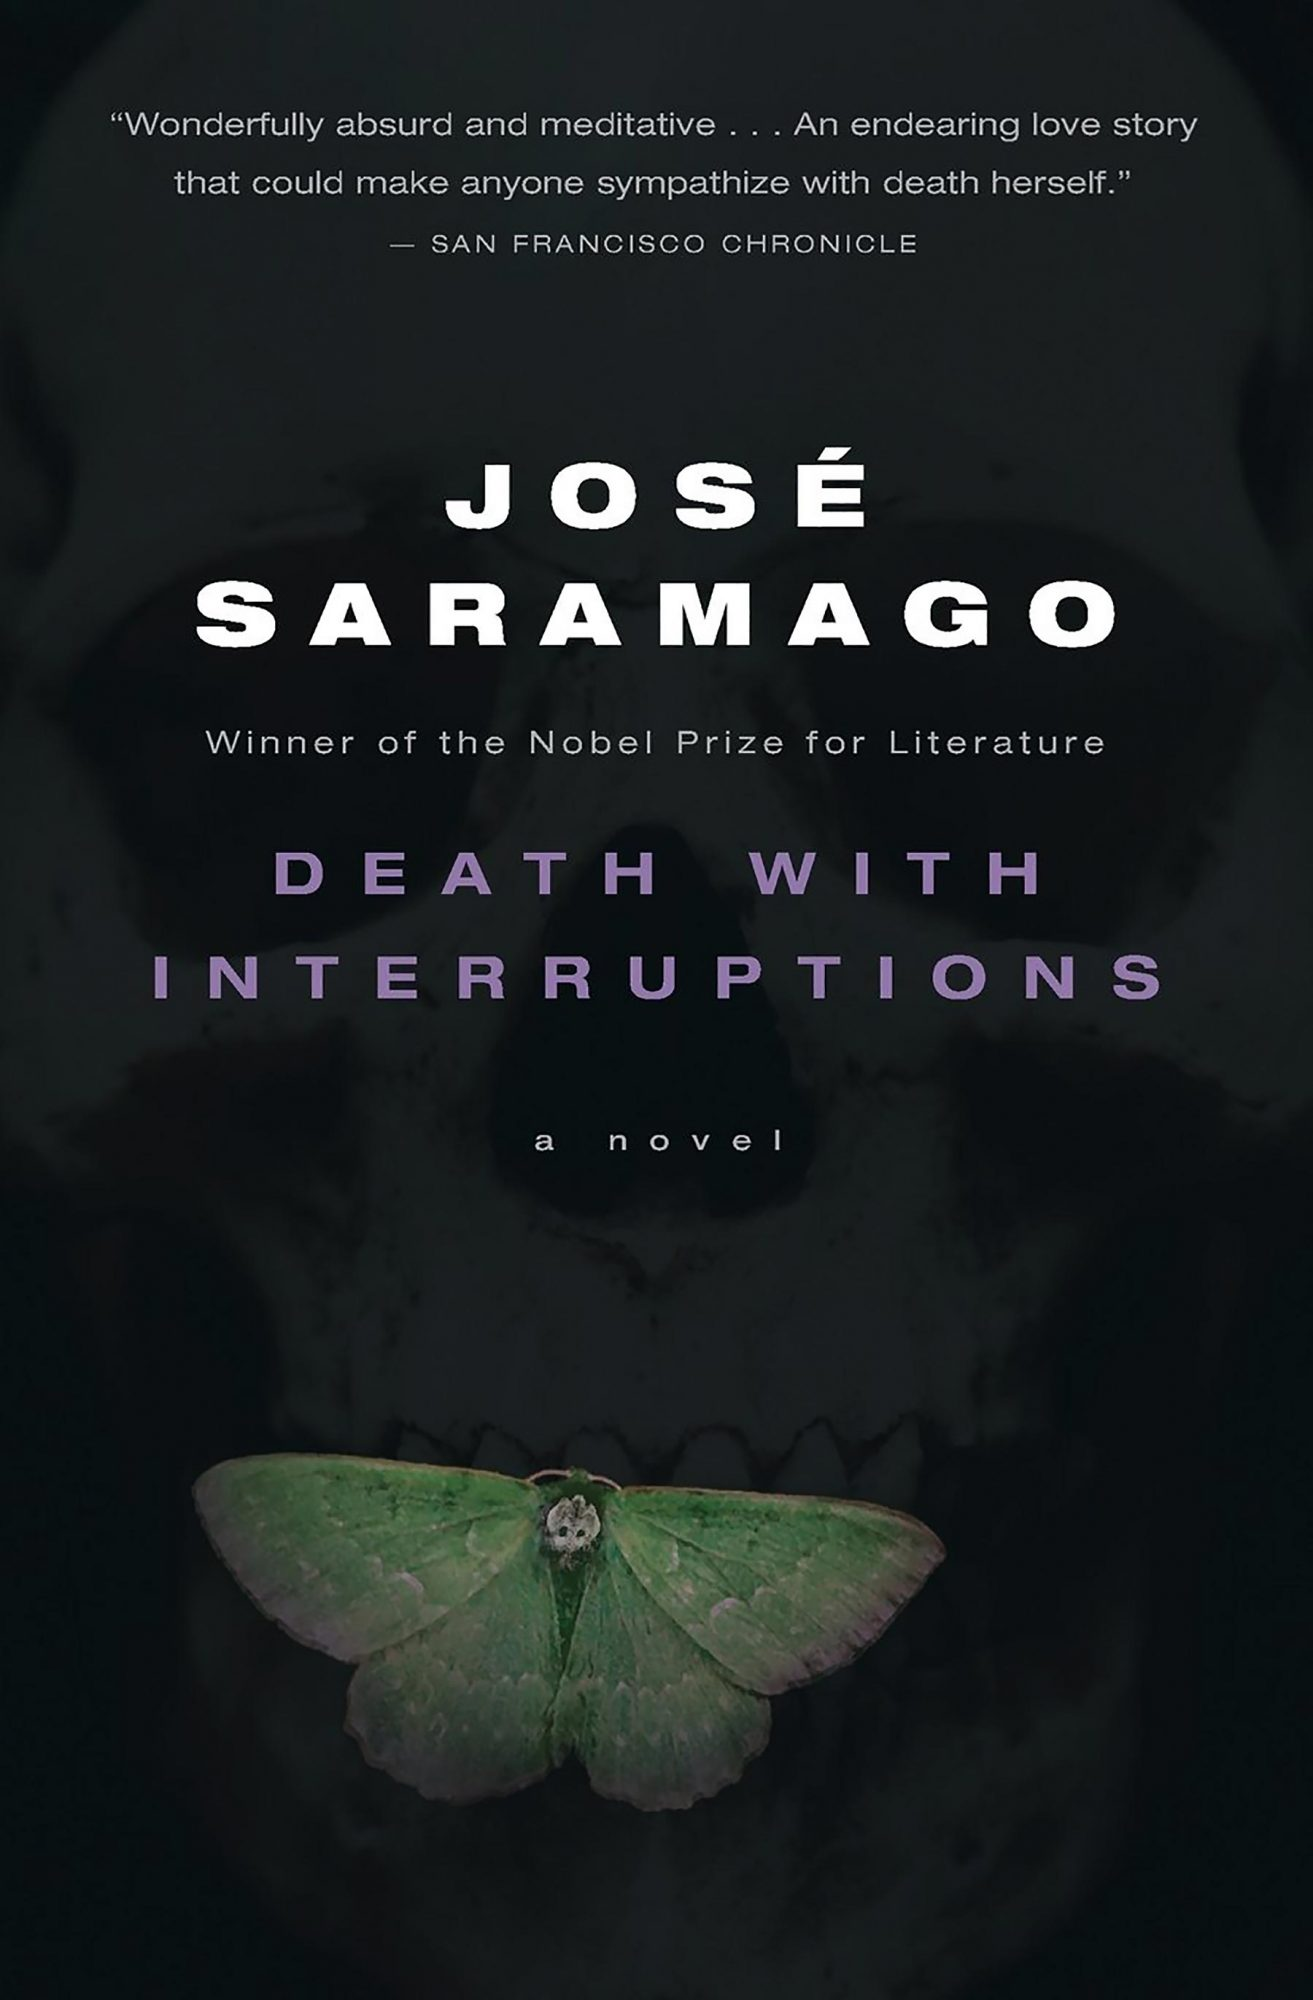 Death with Interruptions by Jose SaramagoCR: Mariner Books